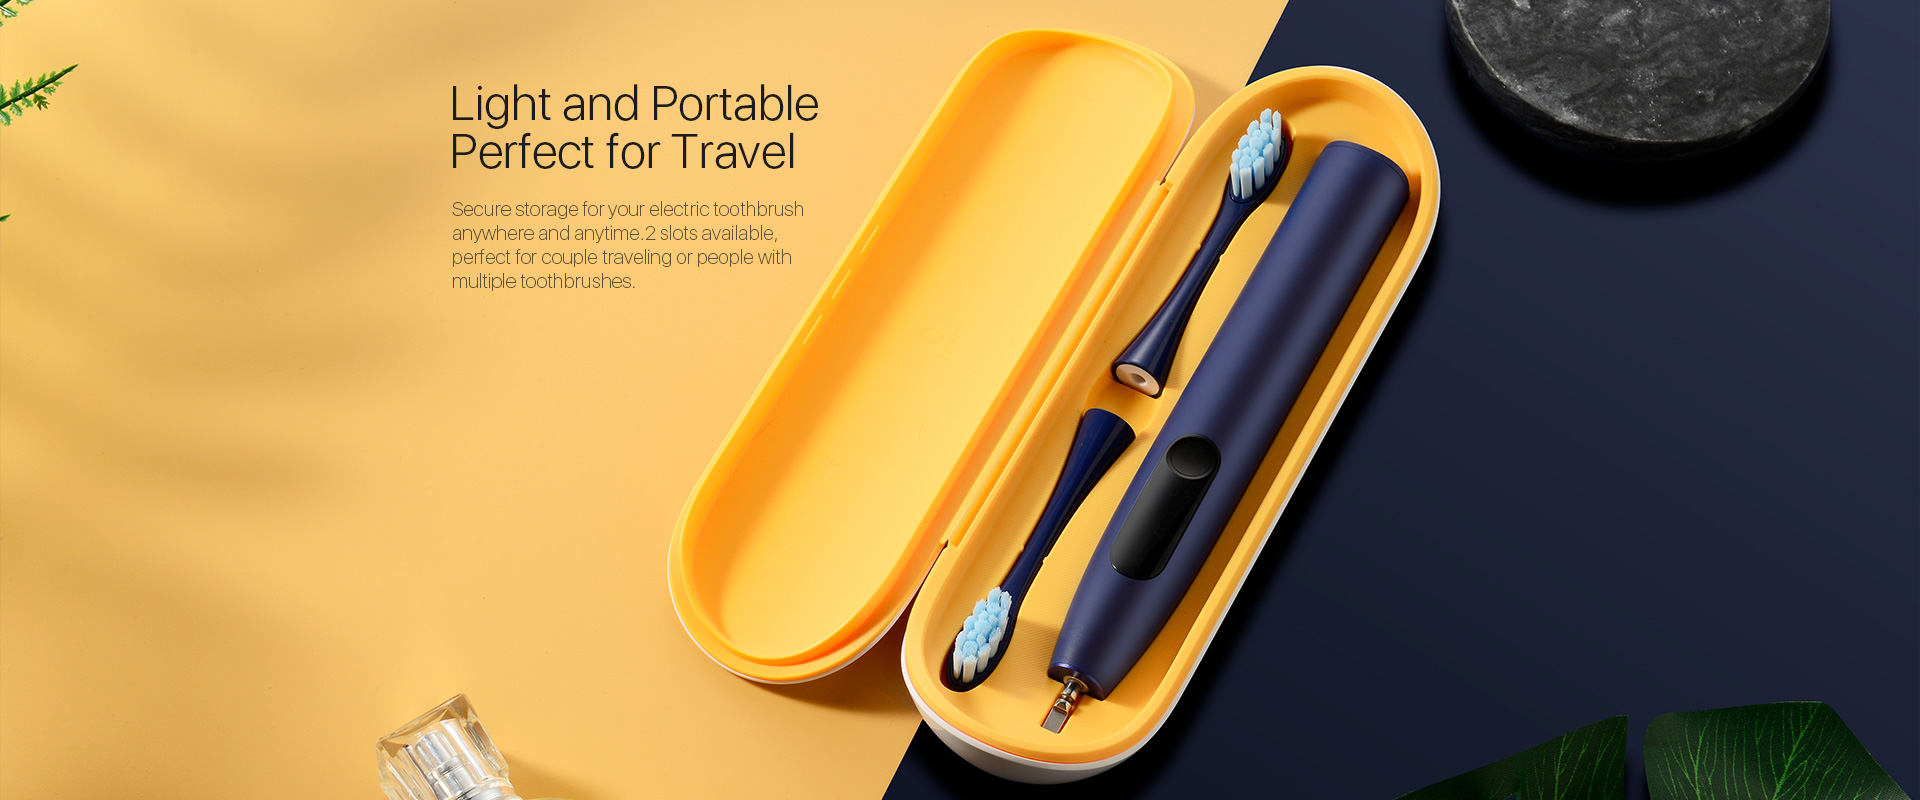 light and portable perfect for travel